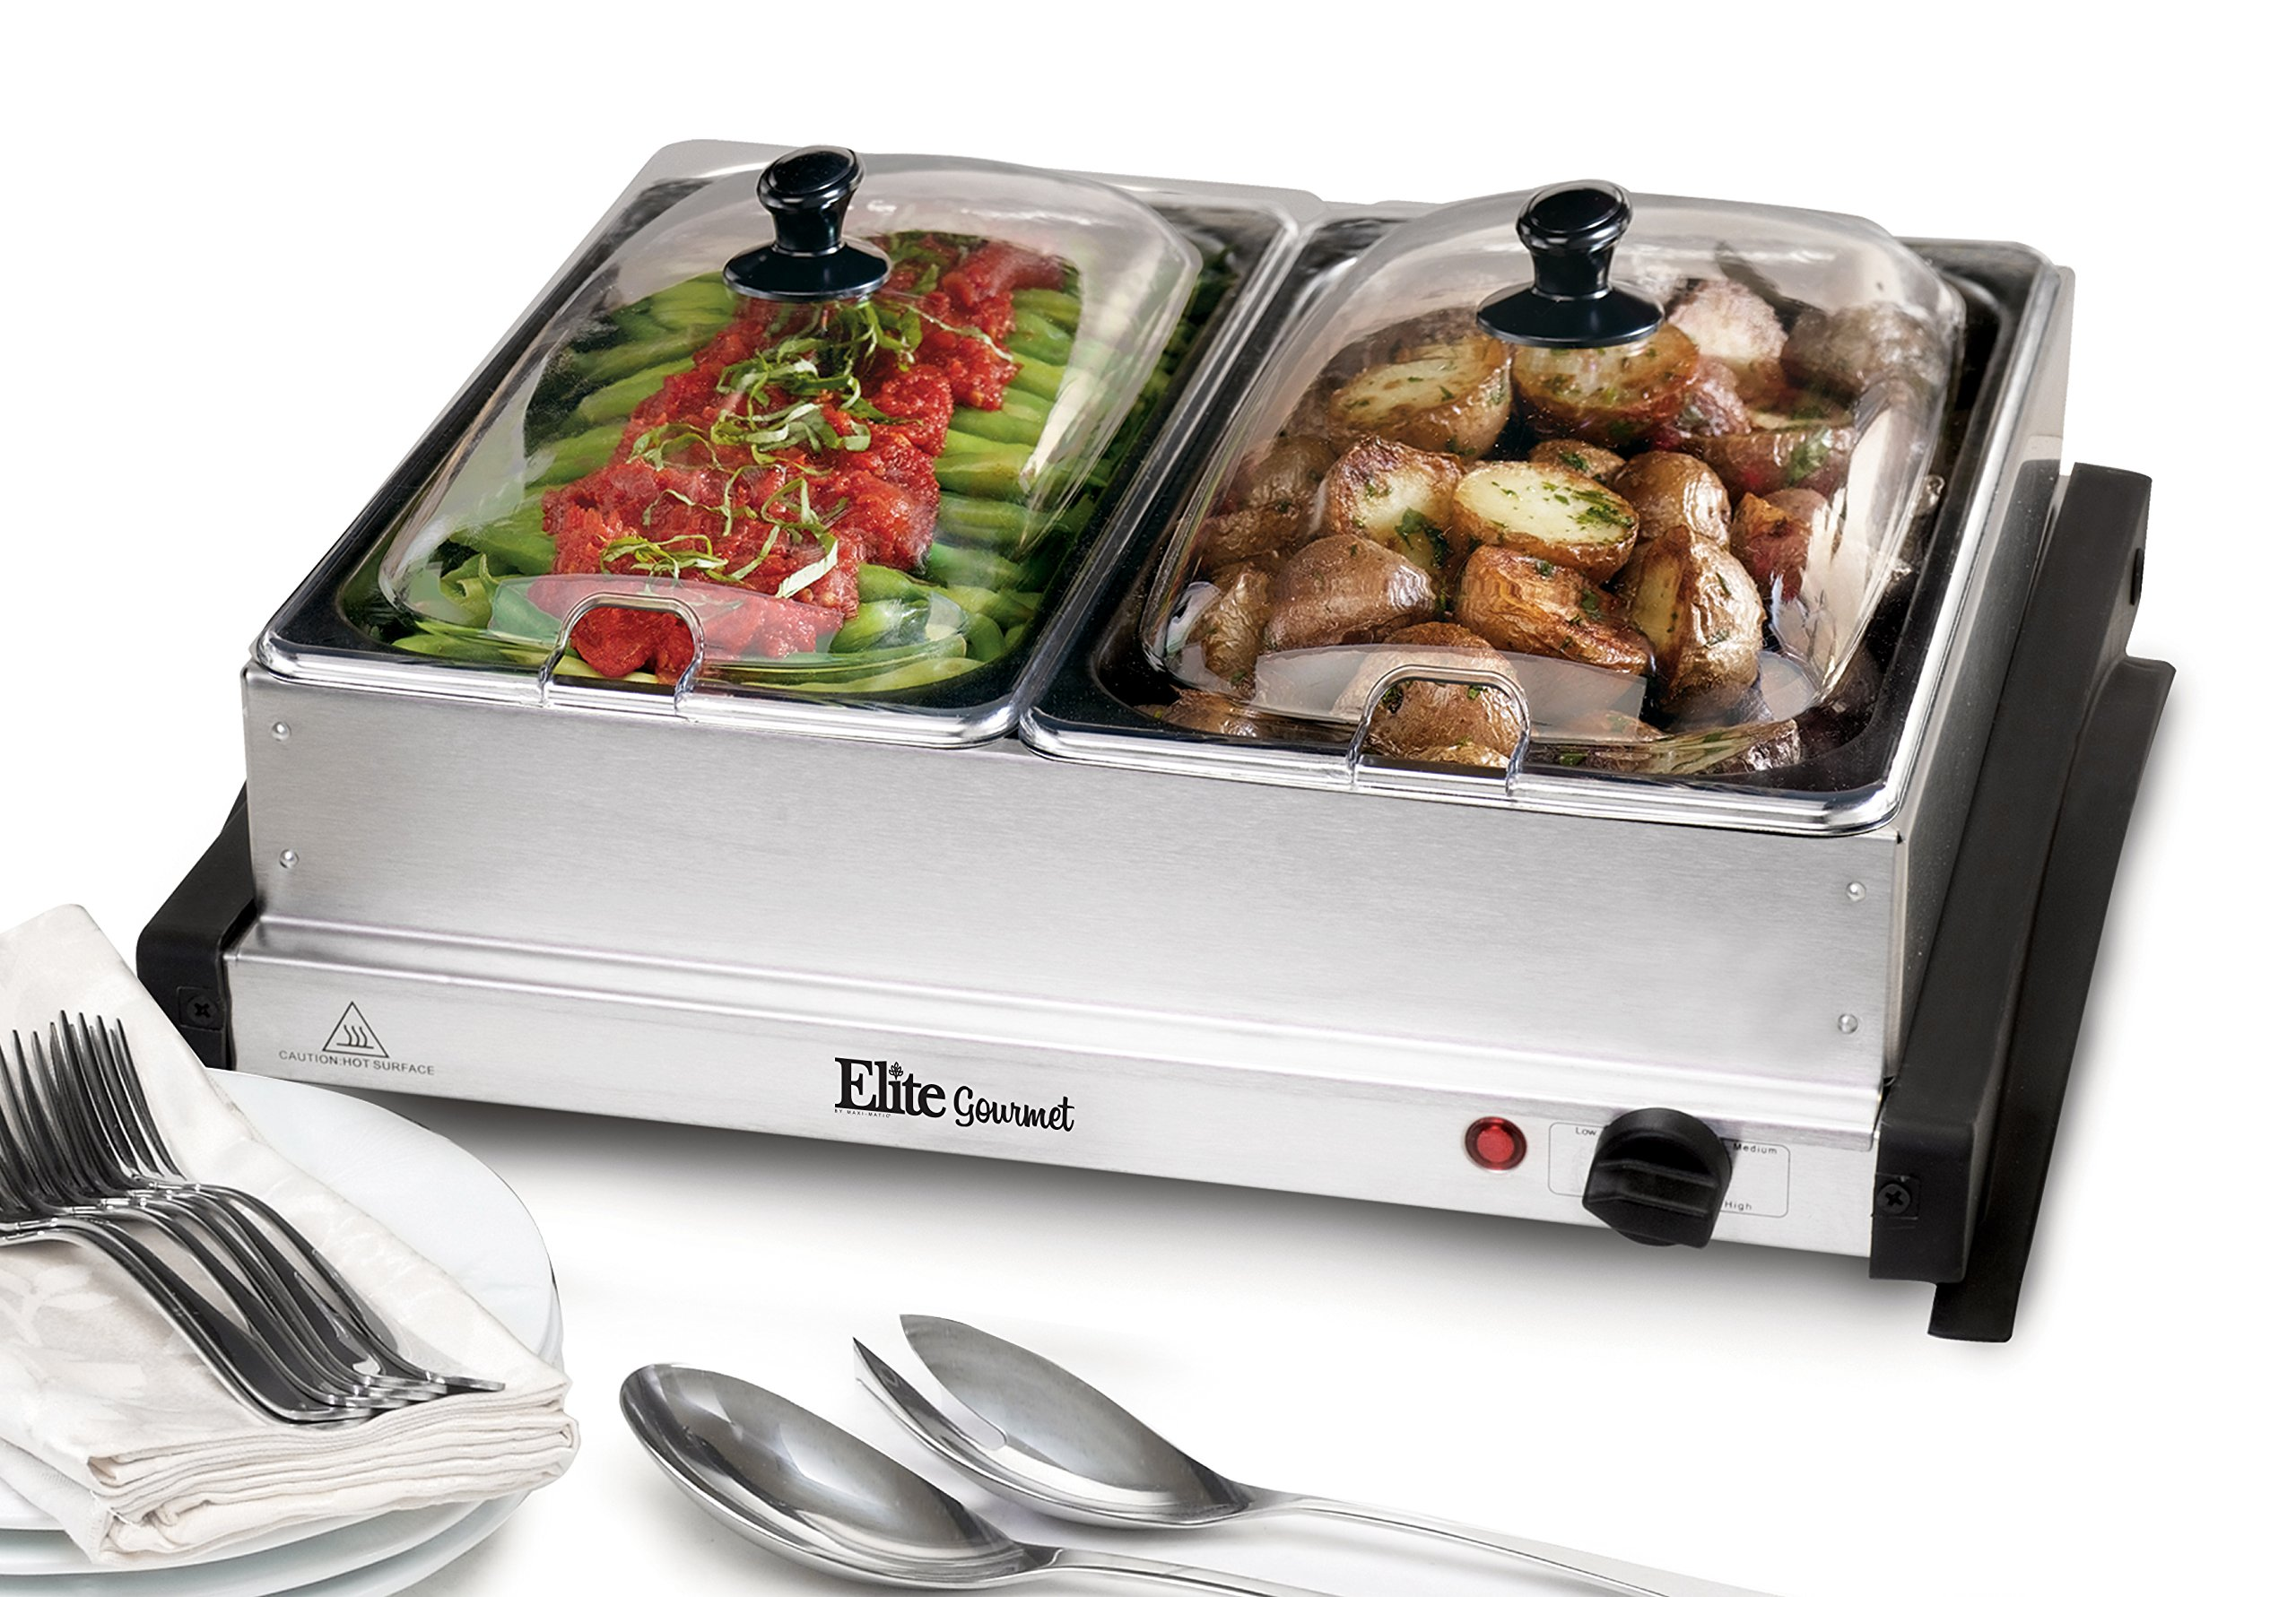 Elite Platinum EWM-6171 Triple Server Food Warmer, Adjustable Temp, Buffet Trays and Slotted Lids, 3 x 2.5 Quart, Stainless Steel